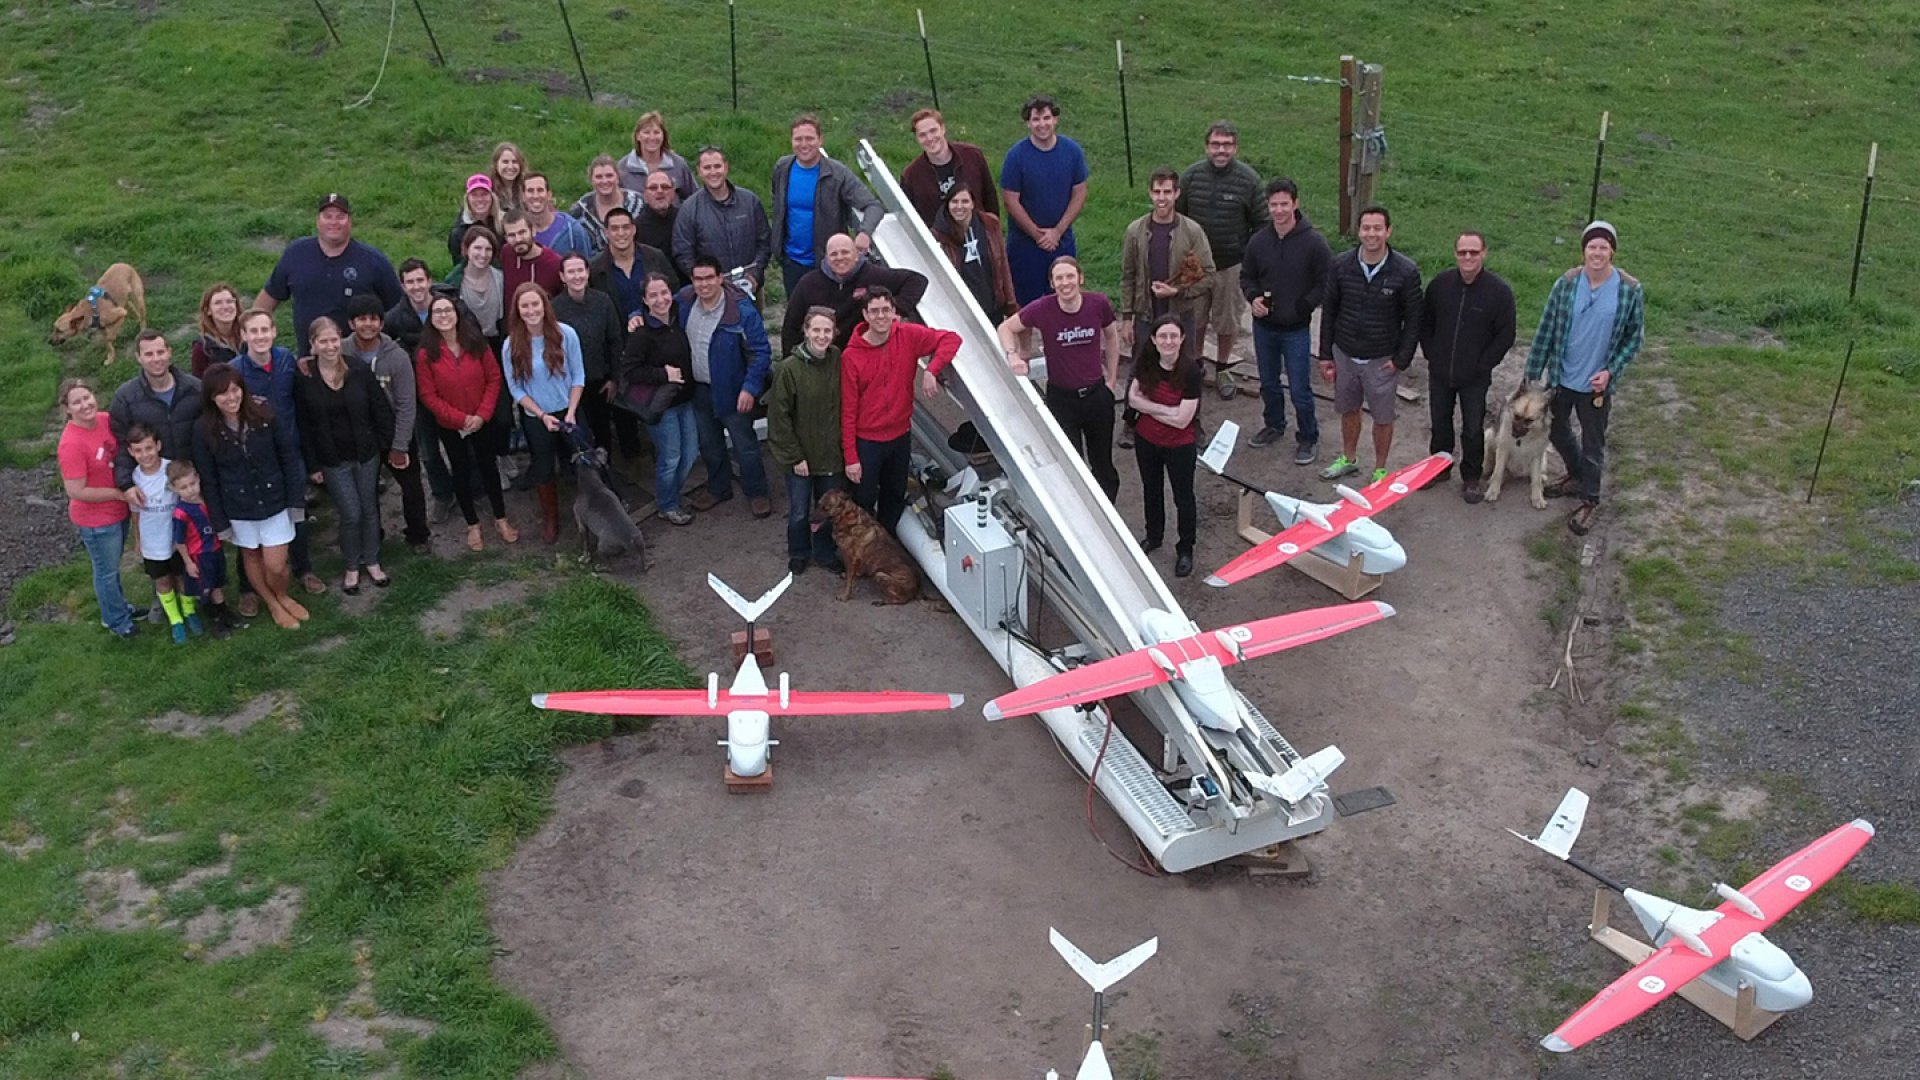 Zipline's team has launched its blood delivery drone service in Rwanda.